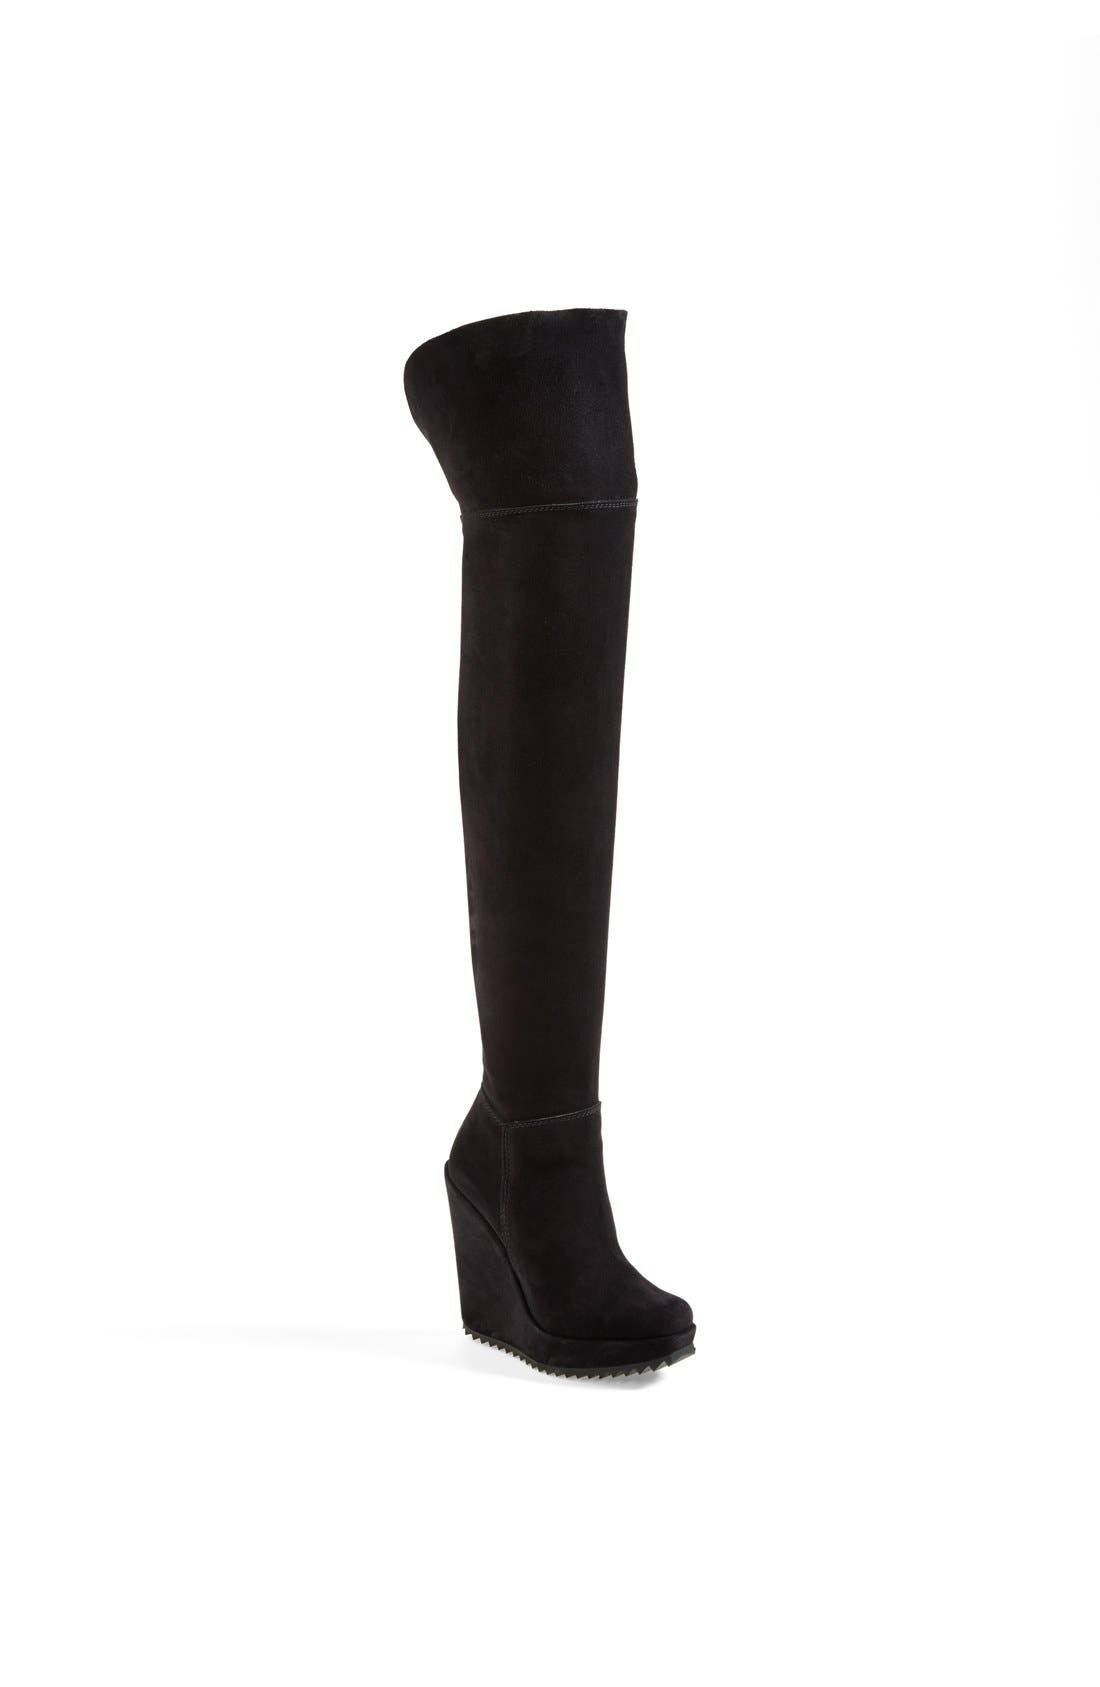 'Vanne' Over-the-Knee Boot,                             Main thumbnail 1, color,                             001